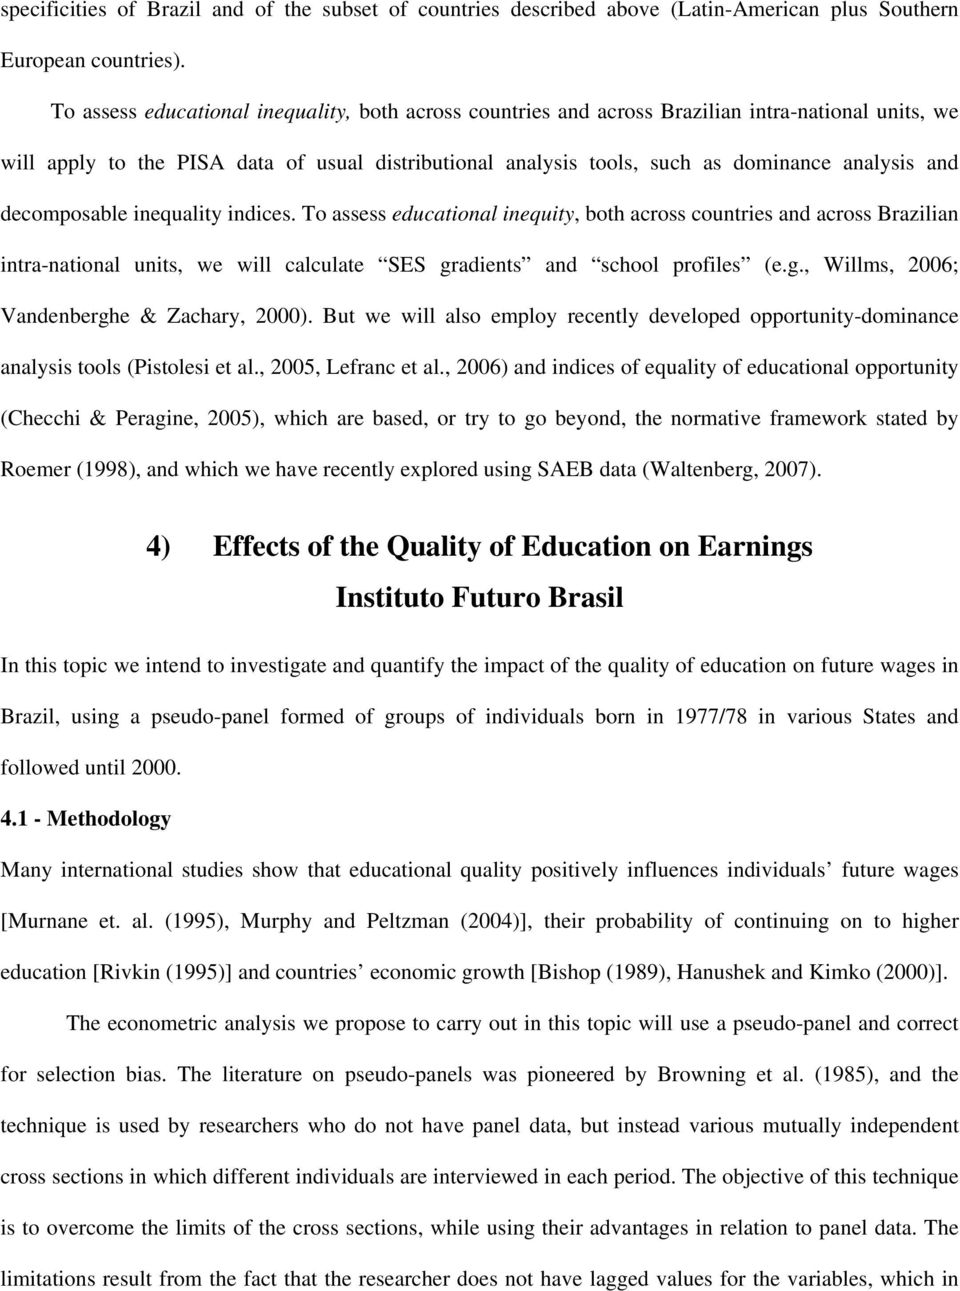 and decomposable inequality indices. To assess educational inequity, both across countries and across Brazilian intra-national units, we will calculate SES gr